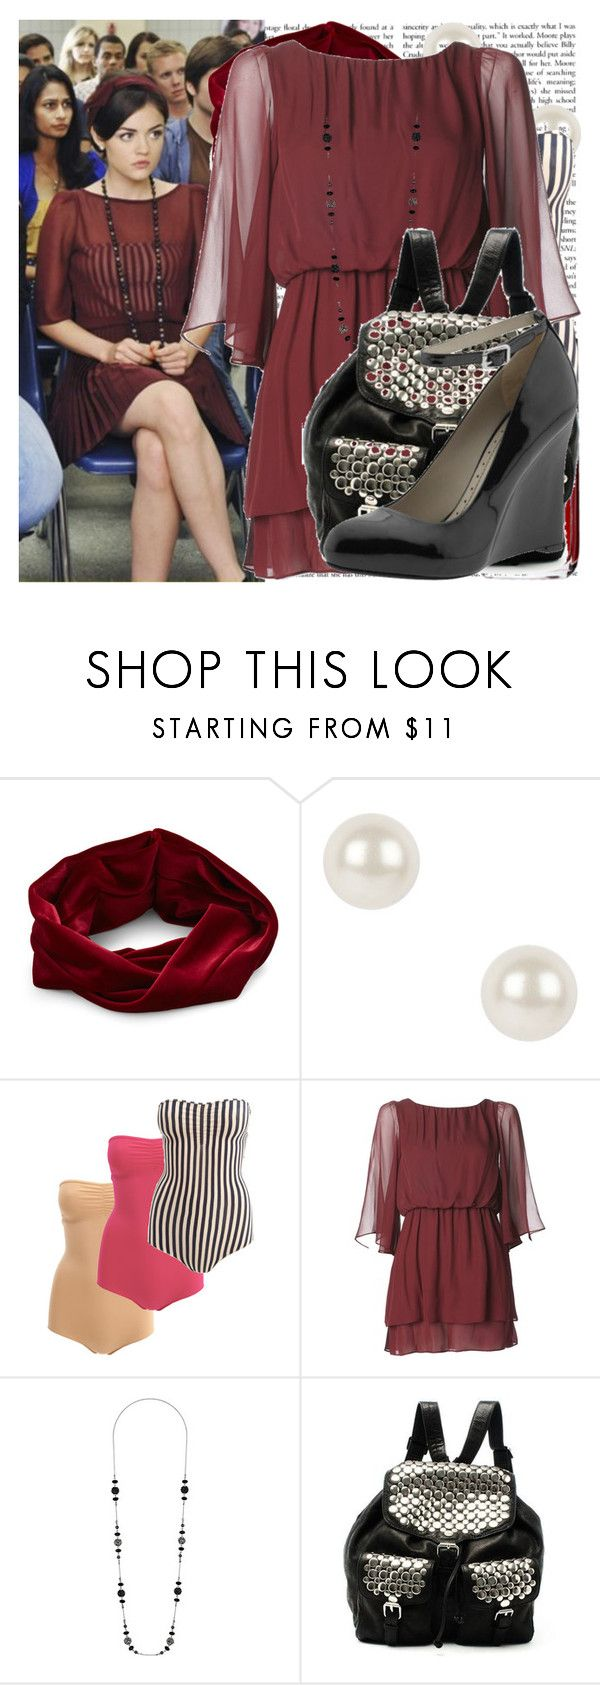 """""""aria - I must confess"""" by cla-90 ❤ liked on Polyvore featuring Eva Franco, Chanel, Finesse, American Apparel, Dorothy Perkins, Rebecca Minkoff, Marc by Marc Jacobs, backpacks, wedge shoes and chiffon dresses"""